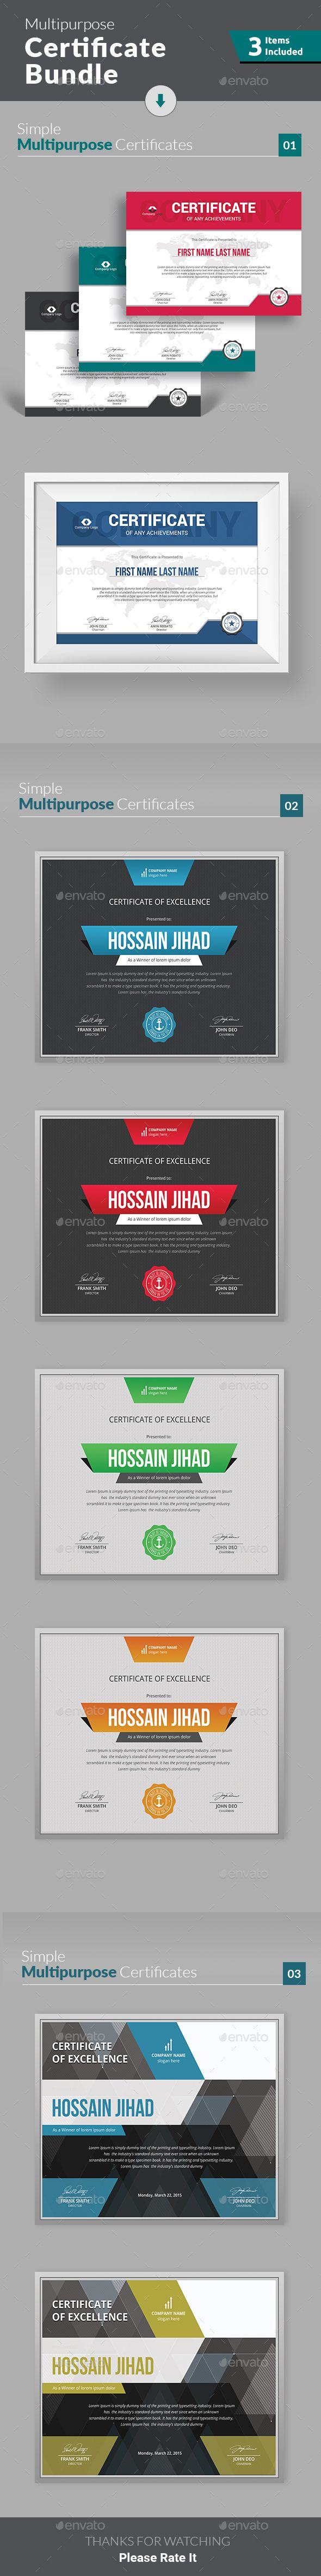 Print Ready Certificate Design Templates https://graphicriver.net/item/certificate/19284705?ref=themedevisers